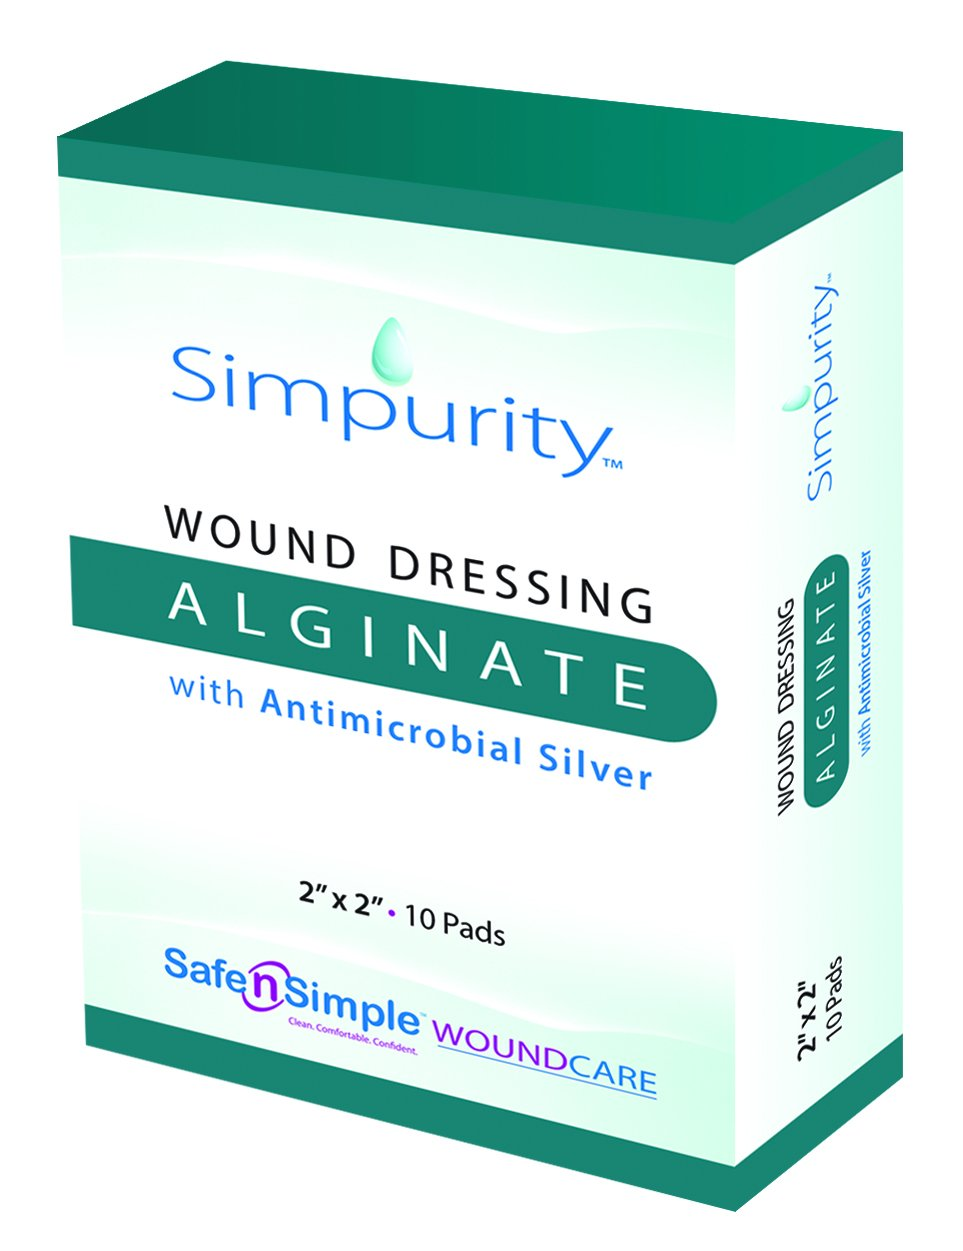 Simpurity Alginate Wound Dressing First Aid with Antimicrobial Silver, 10 Count by Simpurity